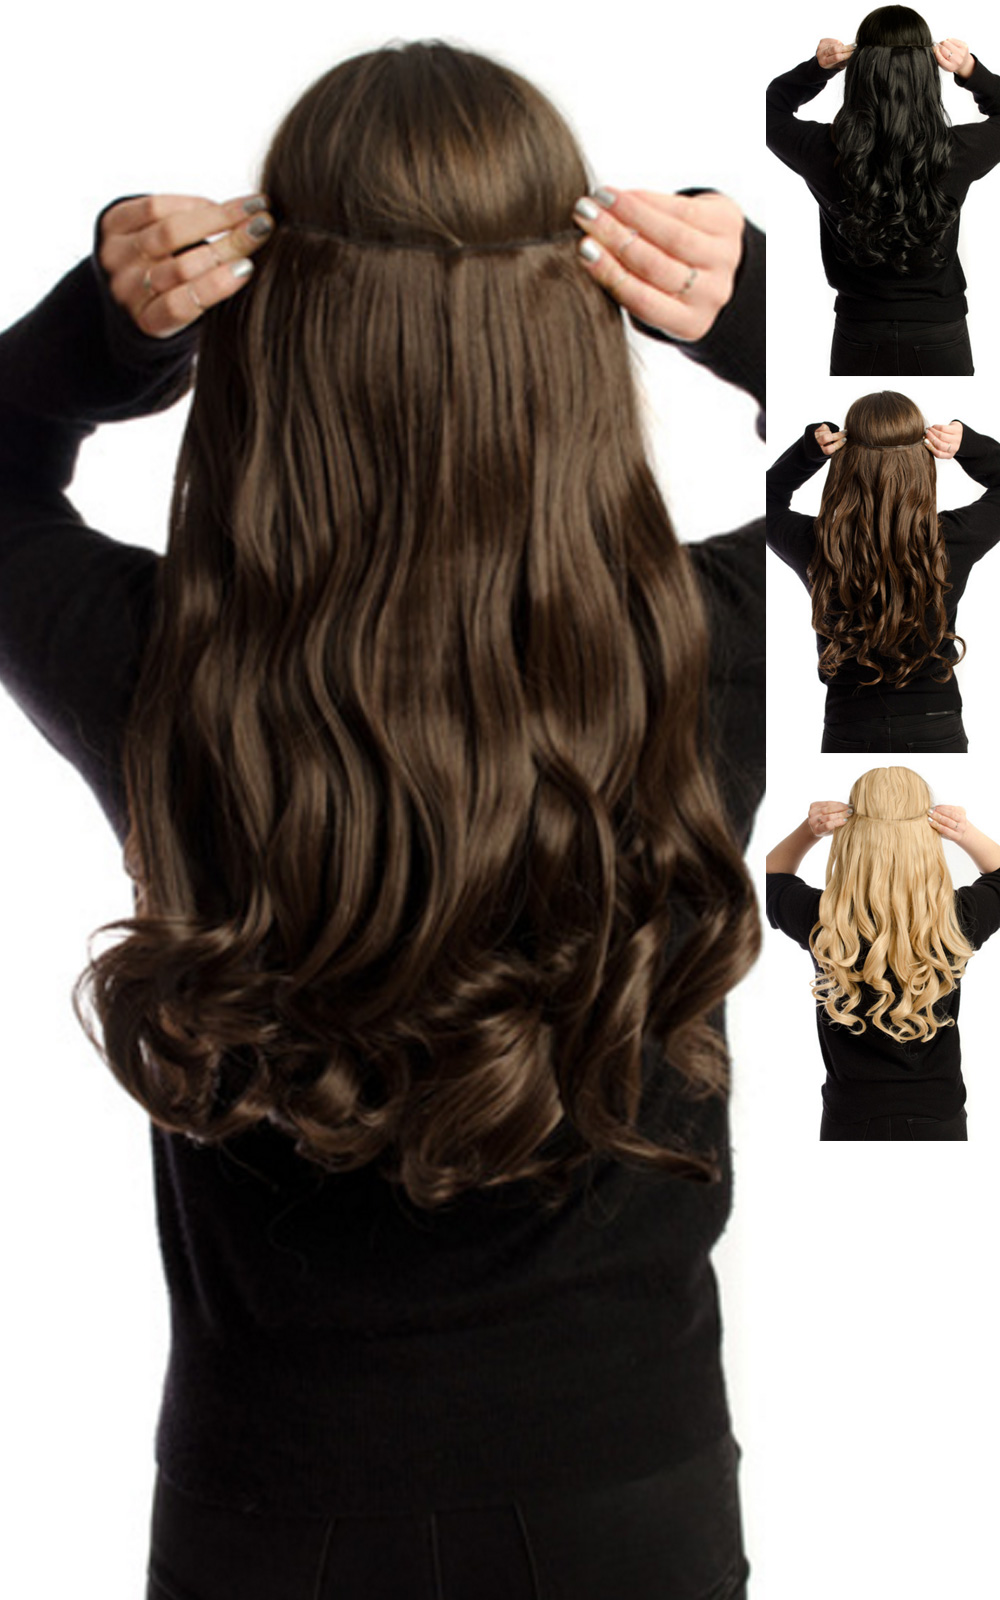 IKRUSH-Women-039-s-Intense-Volume-Clip-In-Hair-Extensions-Curly-in-JET-BLACK thumbnail 2